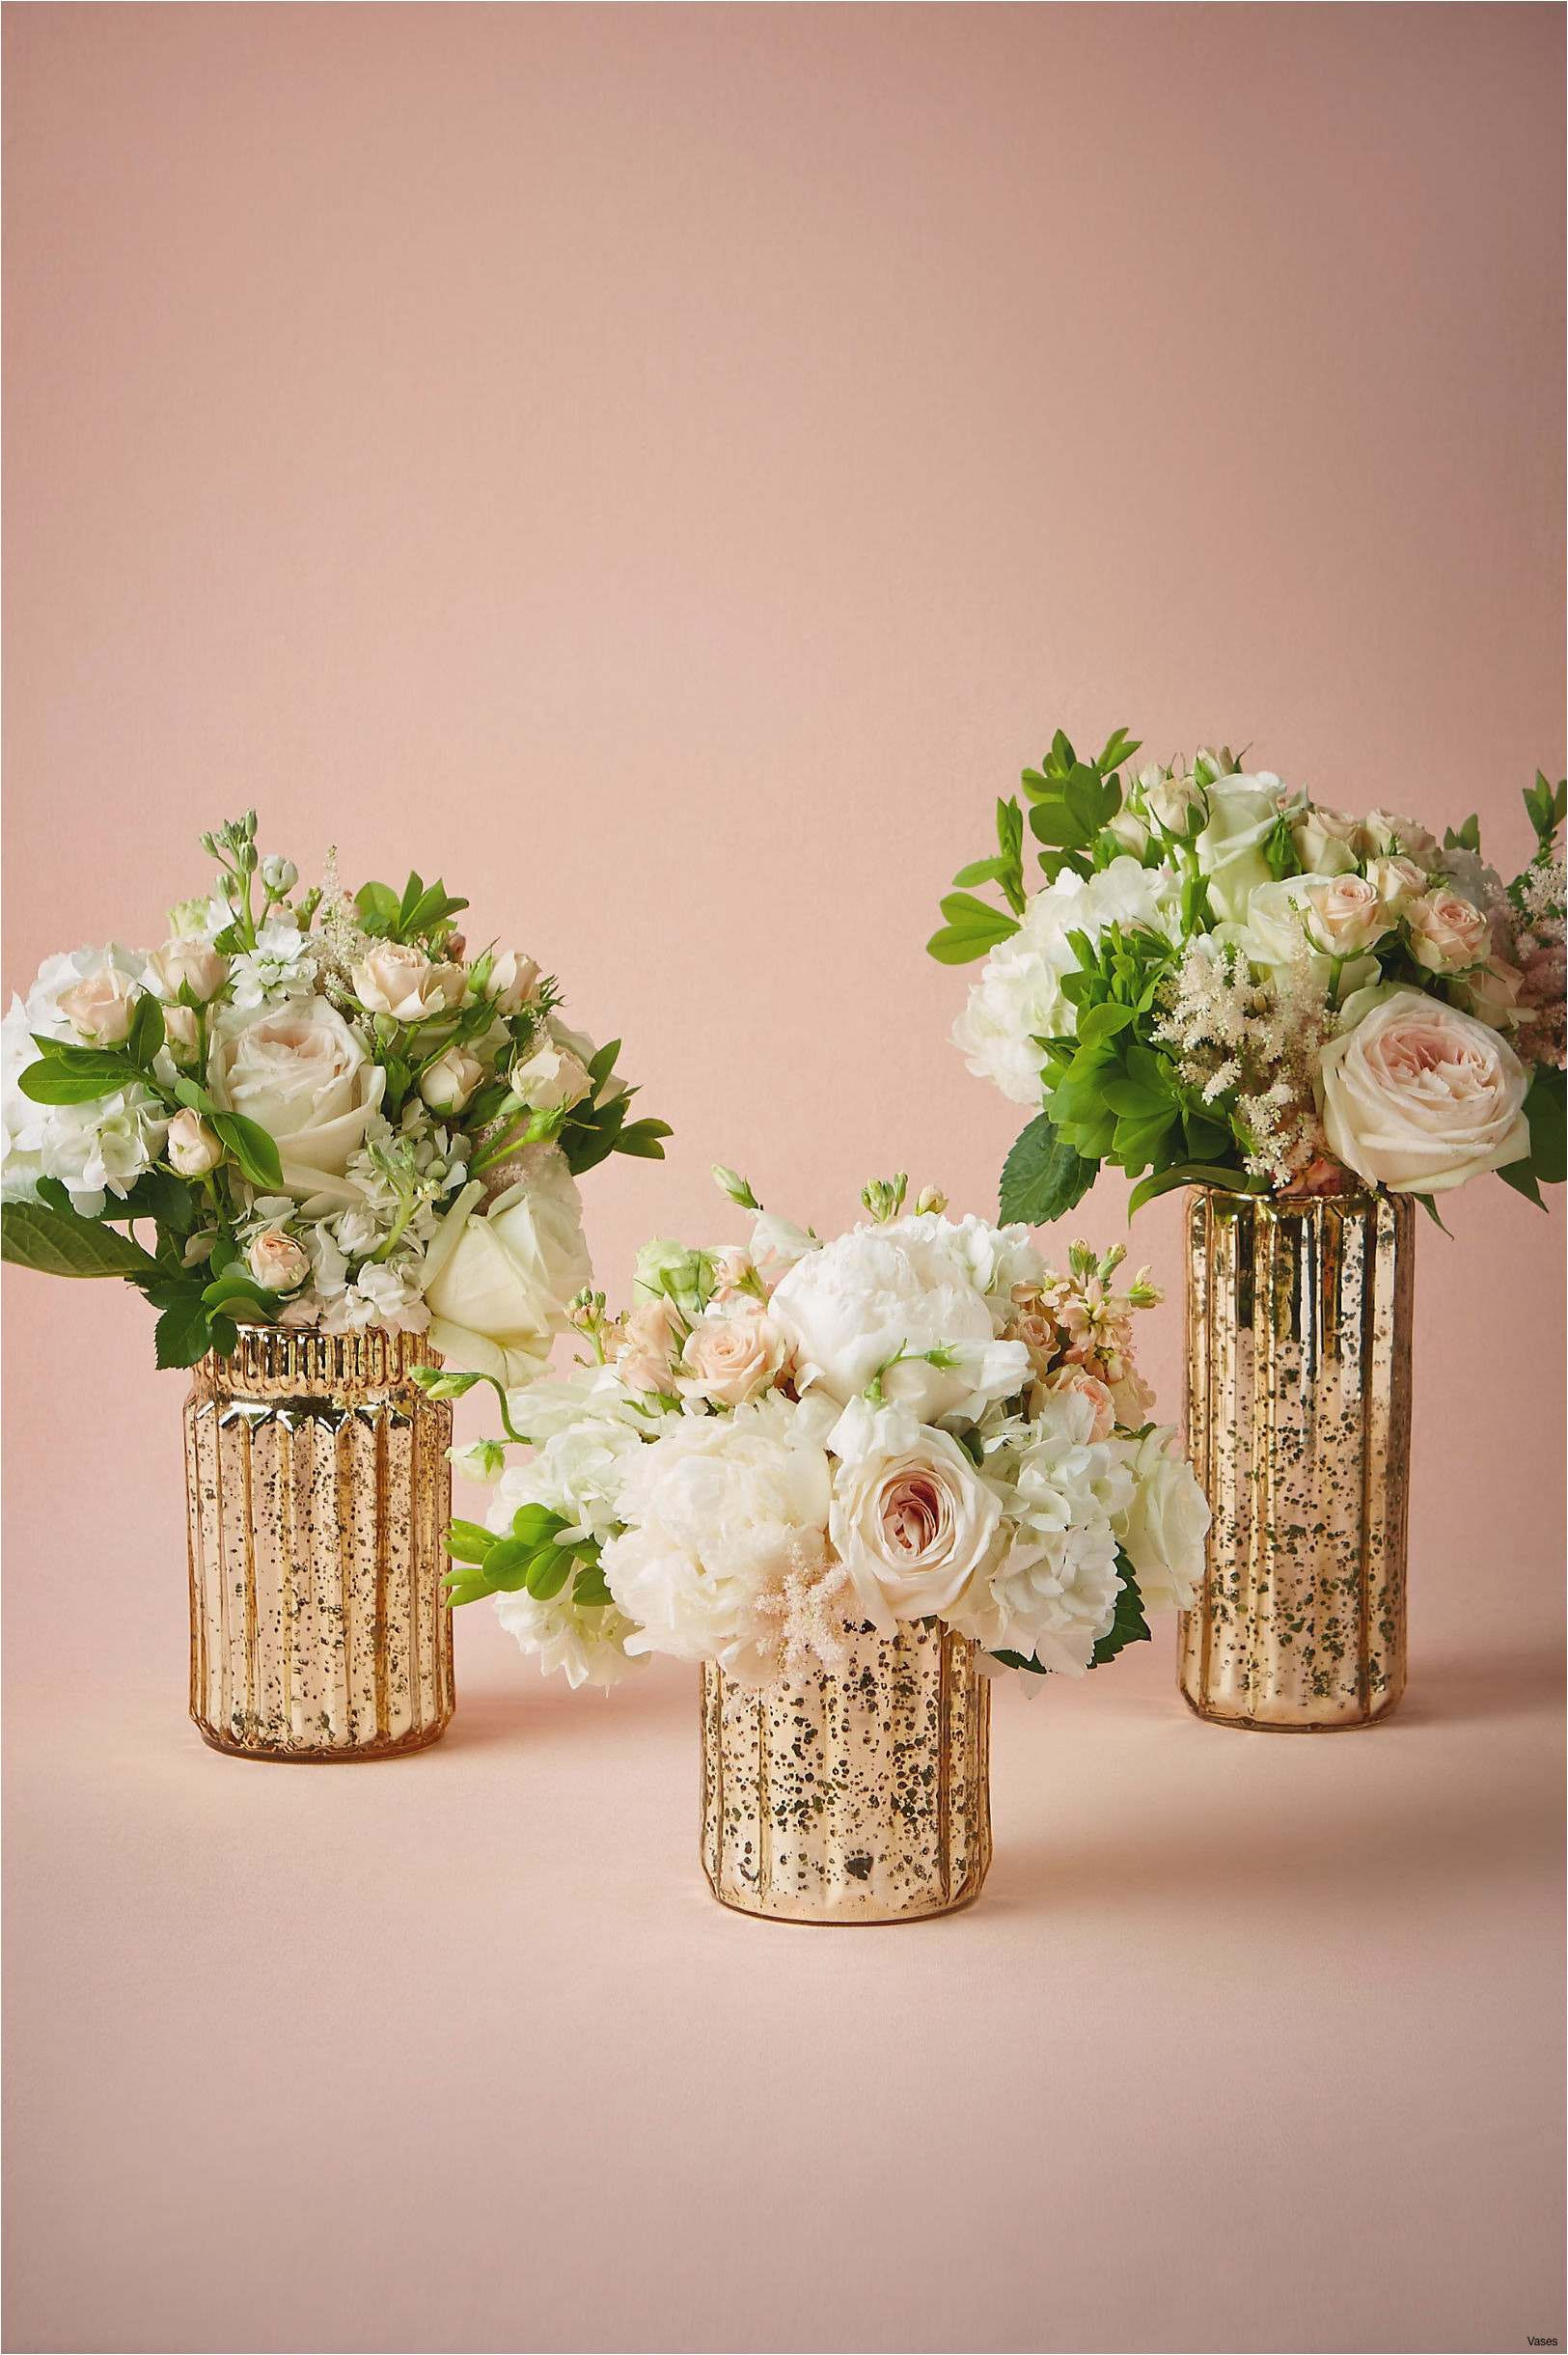 tall vase floral arrangements of wedding flower decoration ideas 6625 1h vases mercury glass cylinder with wedding flower decoration photos 6625 1h vases mercury glass cylinder vasesi 0d australia scheme collection